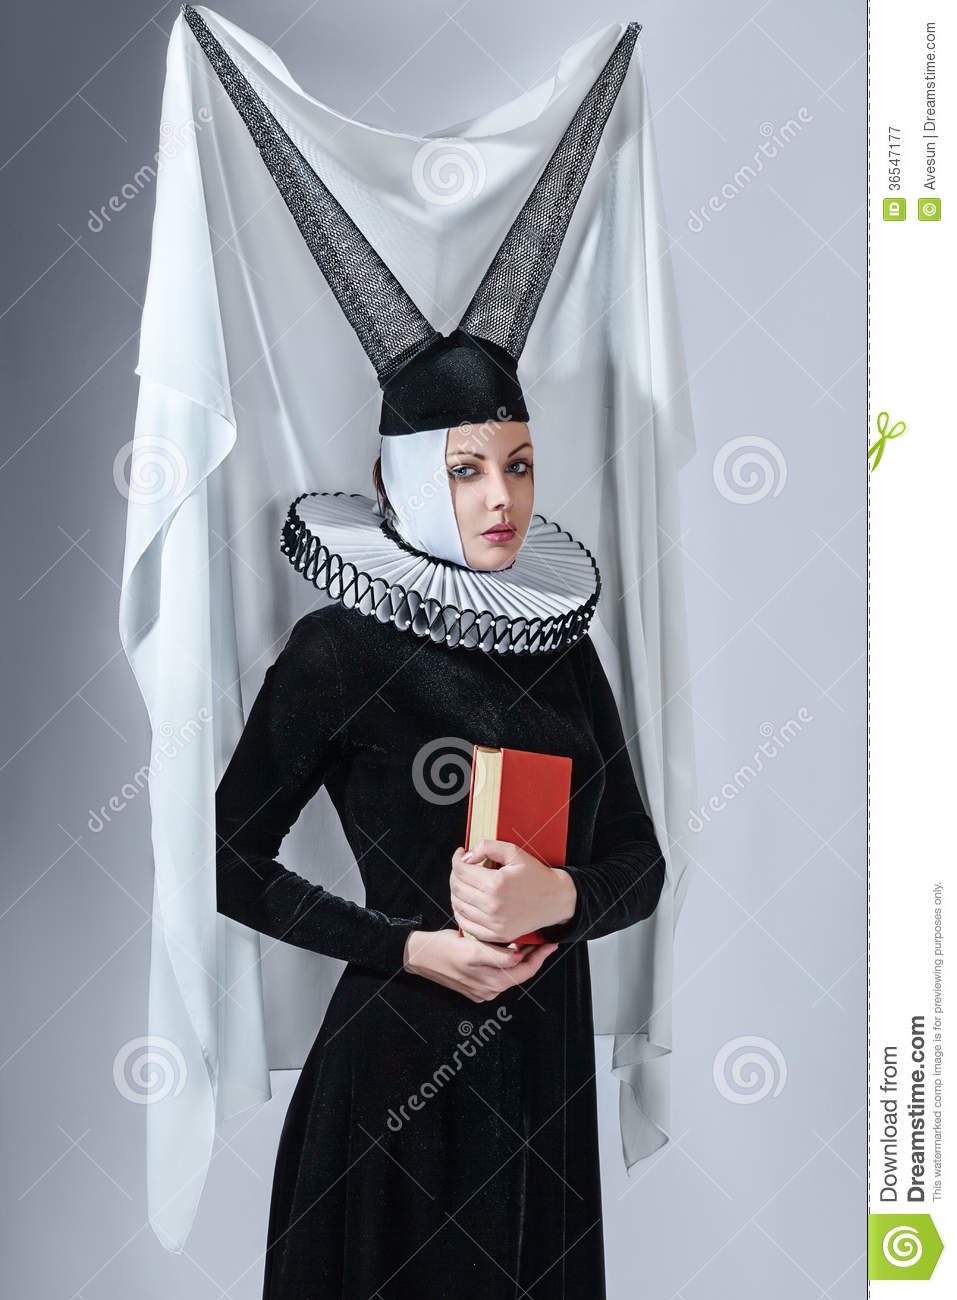 Woman In A Gothic Clothing Royalty Free Stock Photography